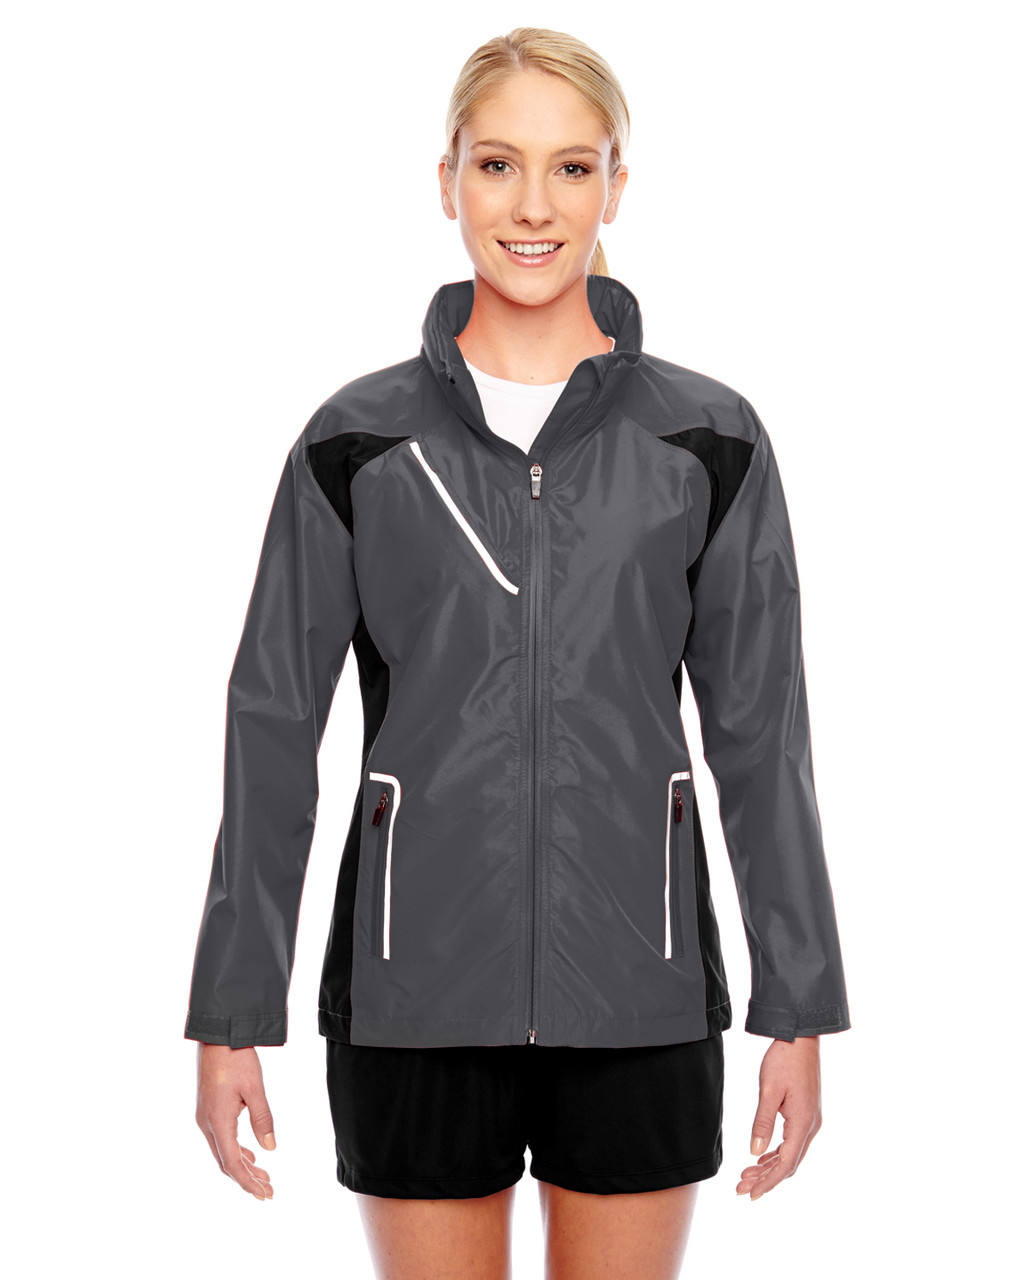 Sport Graphite - TT86W Team 365 Dominator Waterproof Jacket